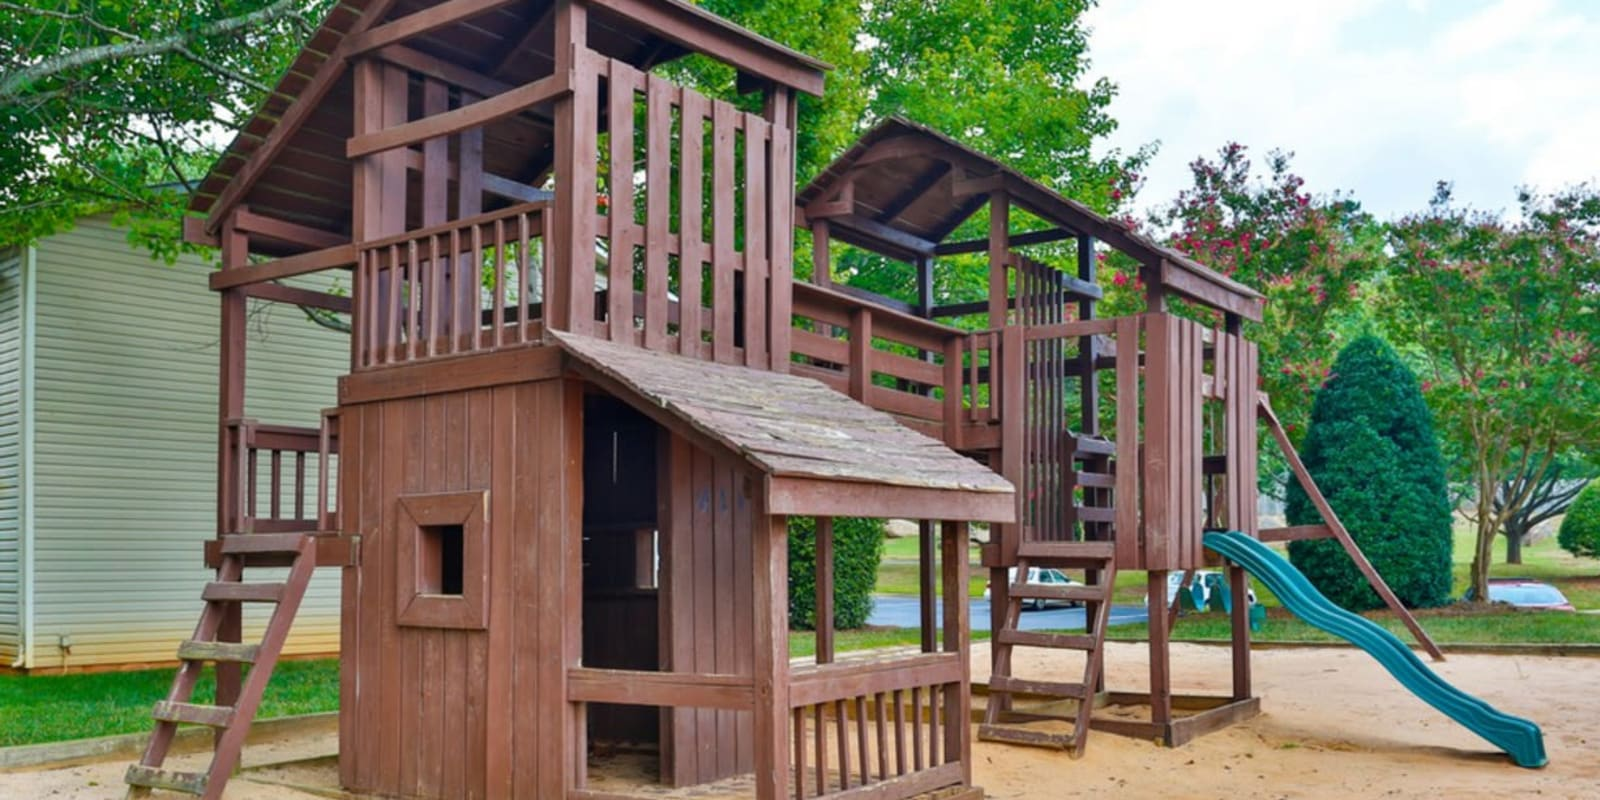 Rustic playground with a slide for resident children at Huntersville Apartment Homes in Huntersville, North Carolina